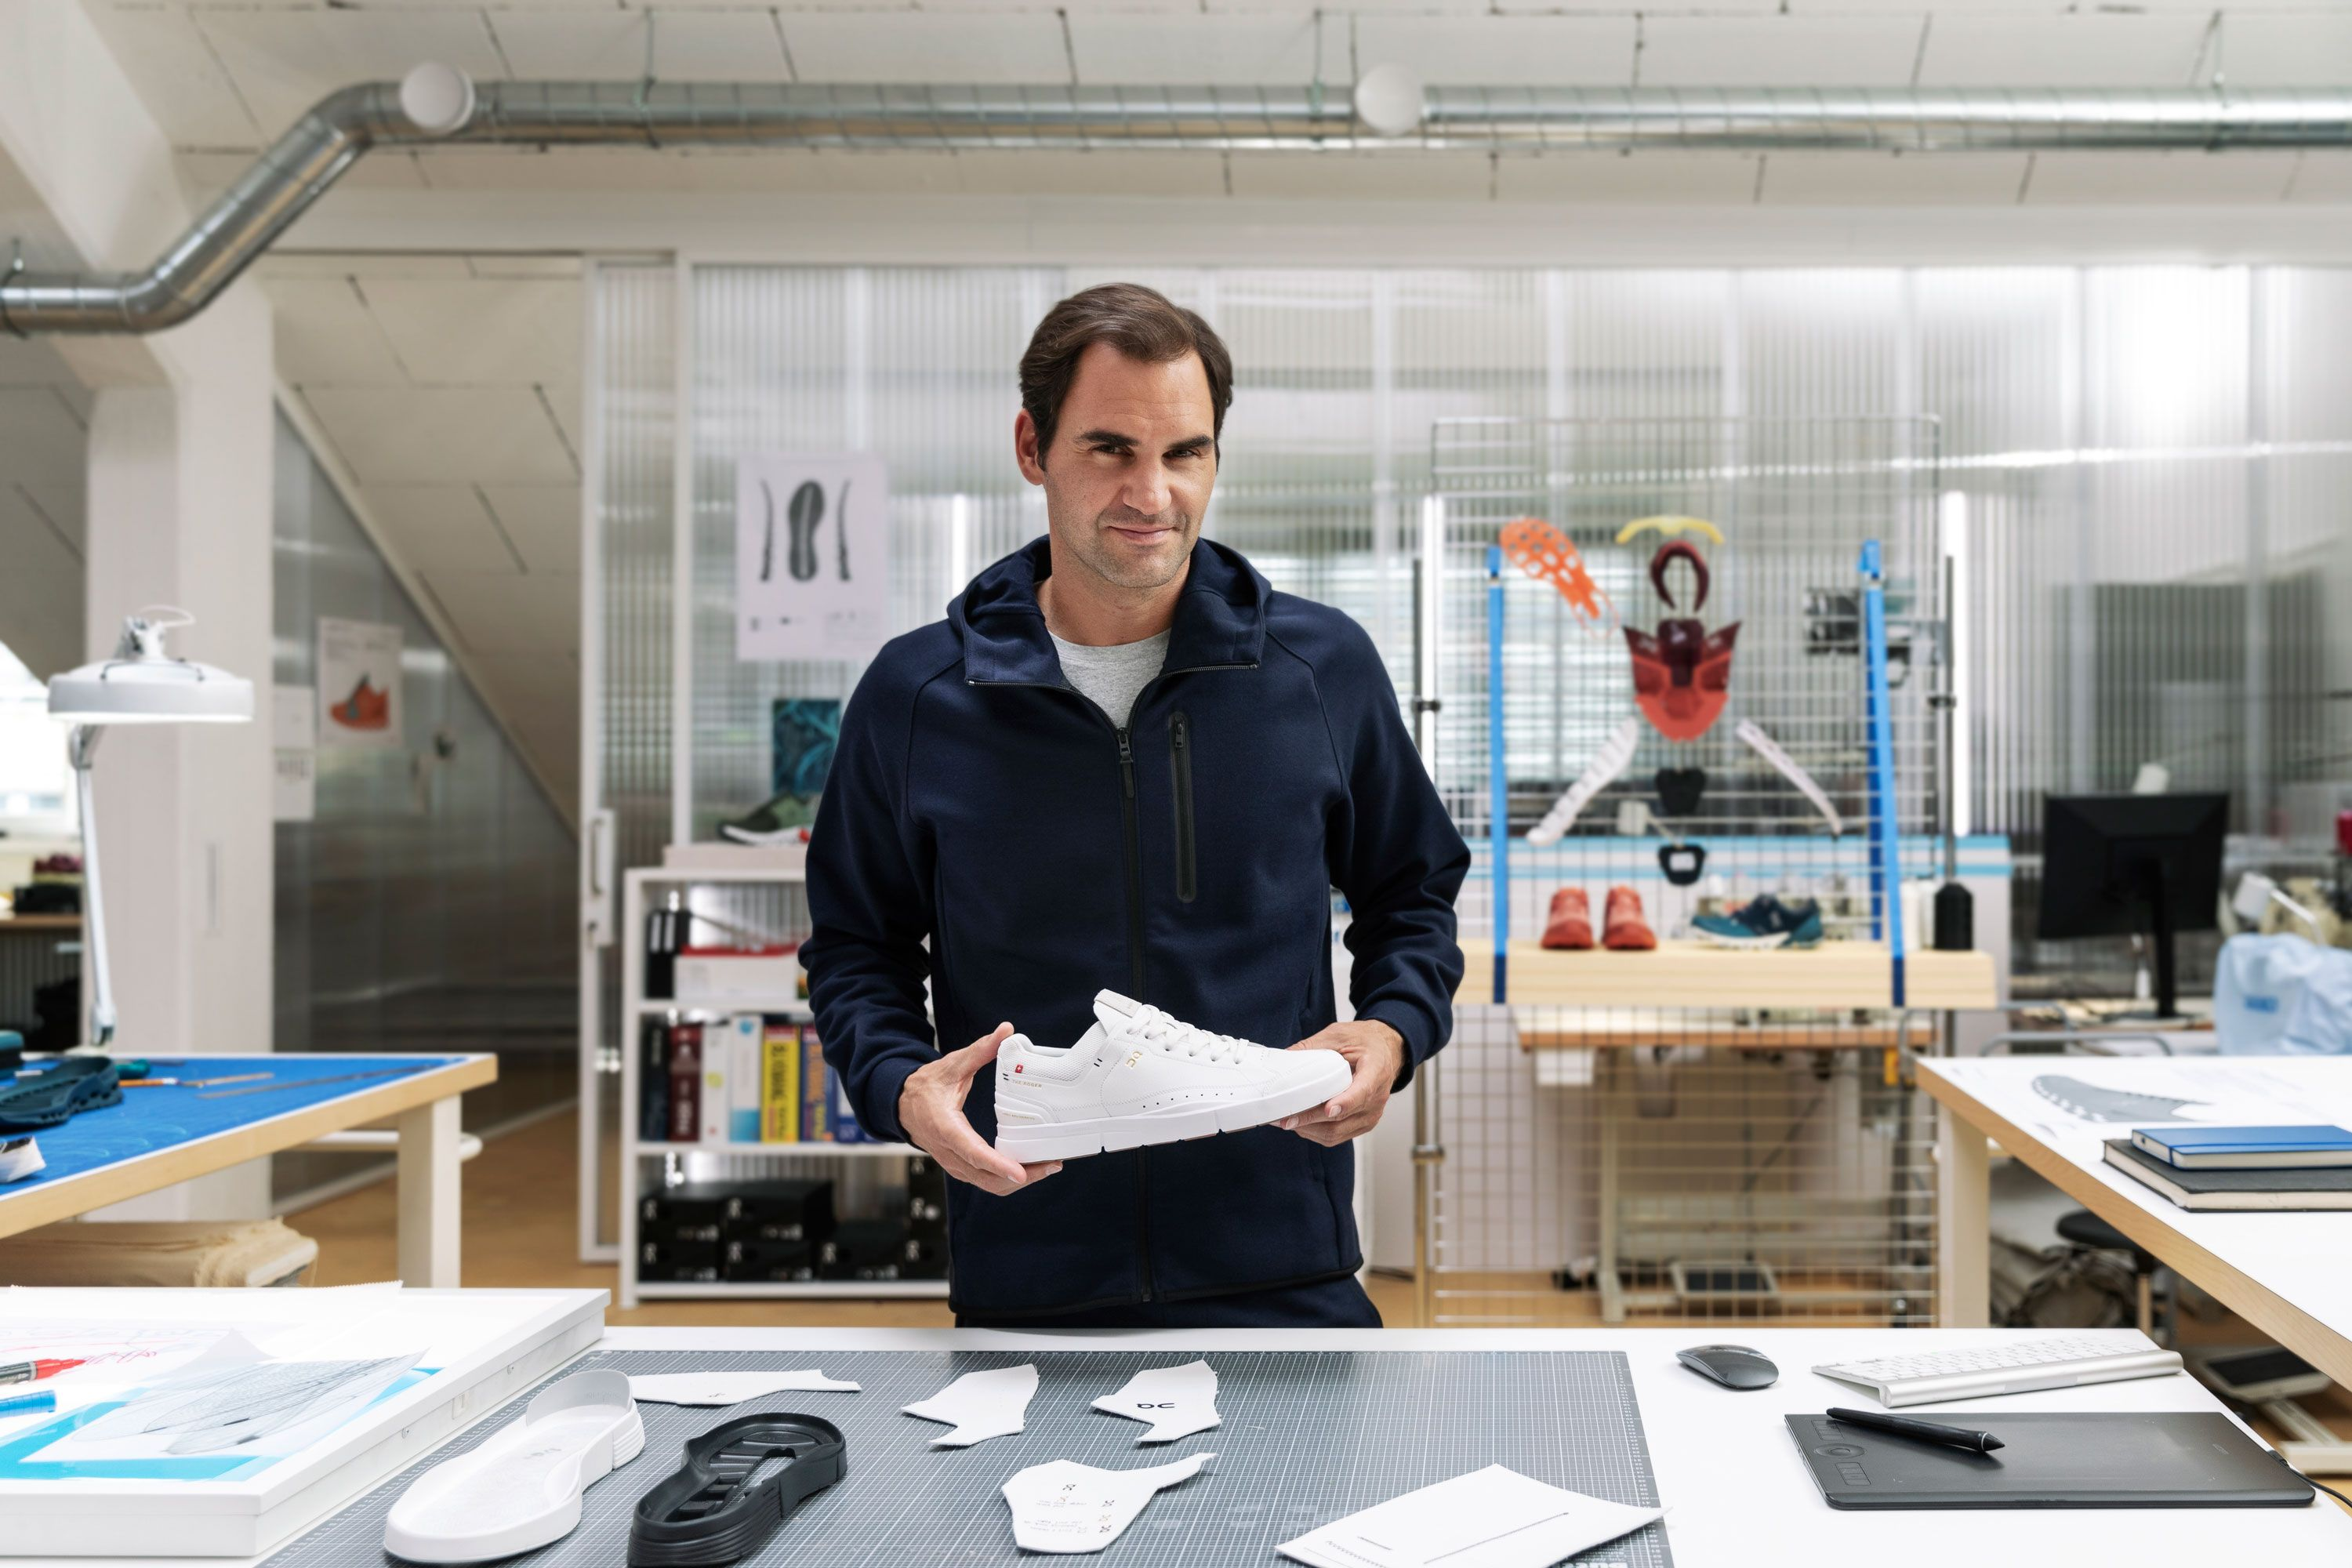 On and Roger Federer Just Gave the Classic Tennis Shoe a Low-Key Futuristic Overhaul